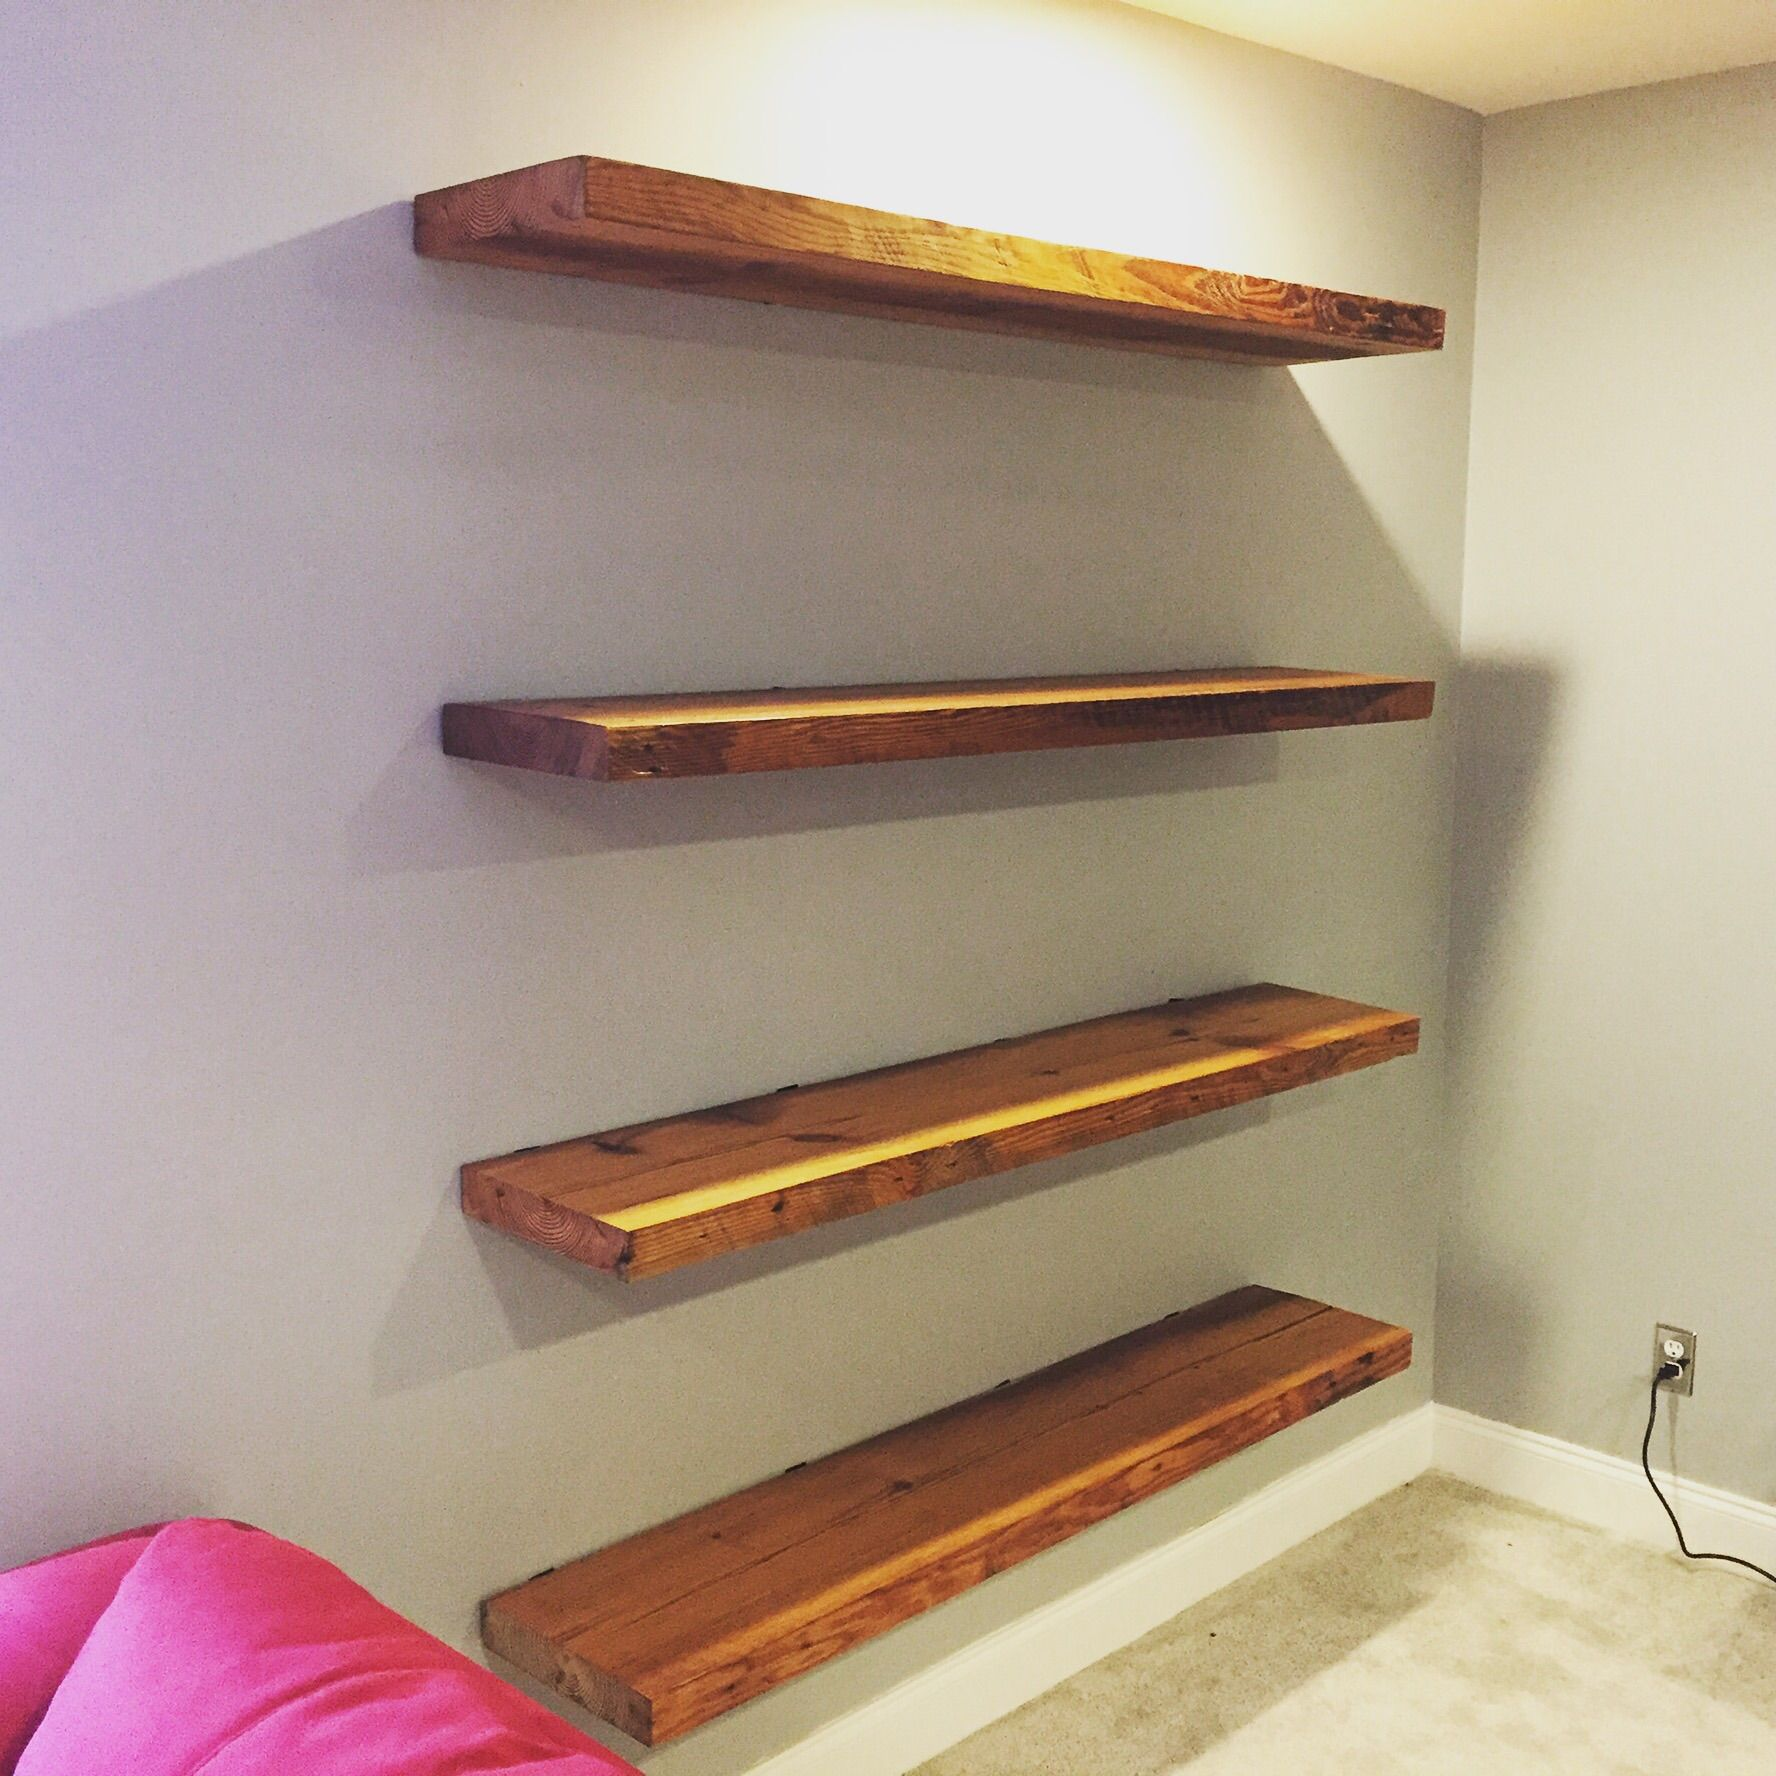 Heart Pine Shelves Made From Old Floor Beams We Connected To The